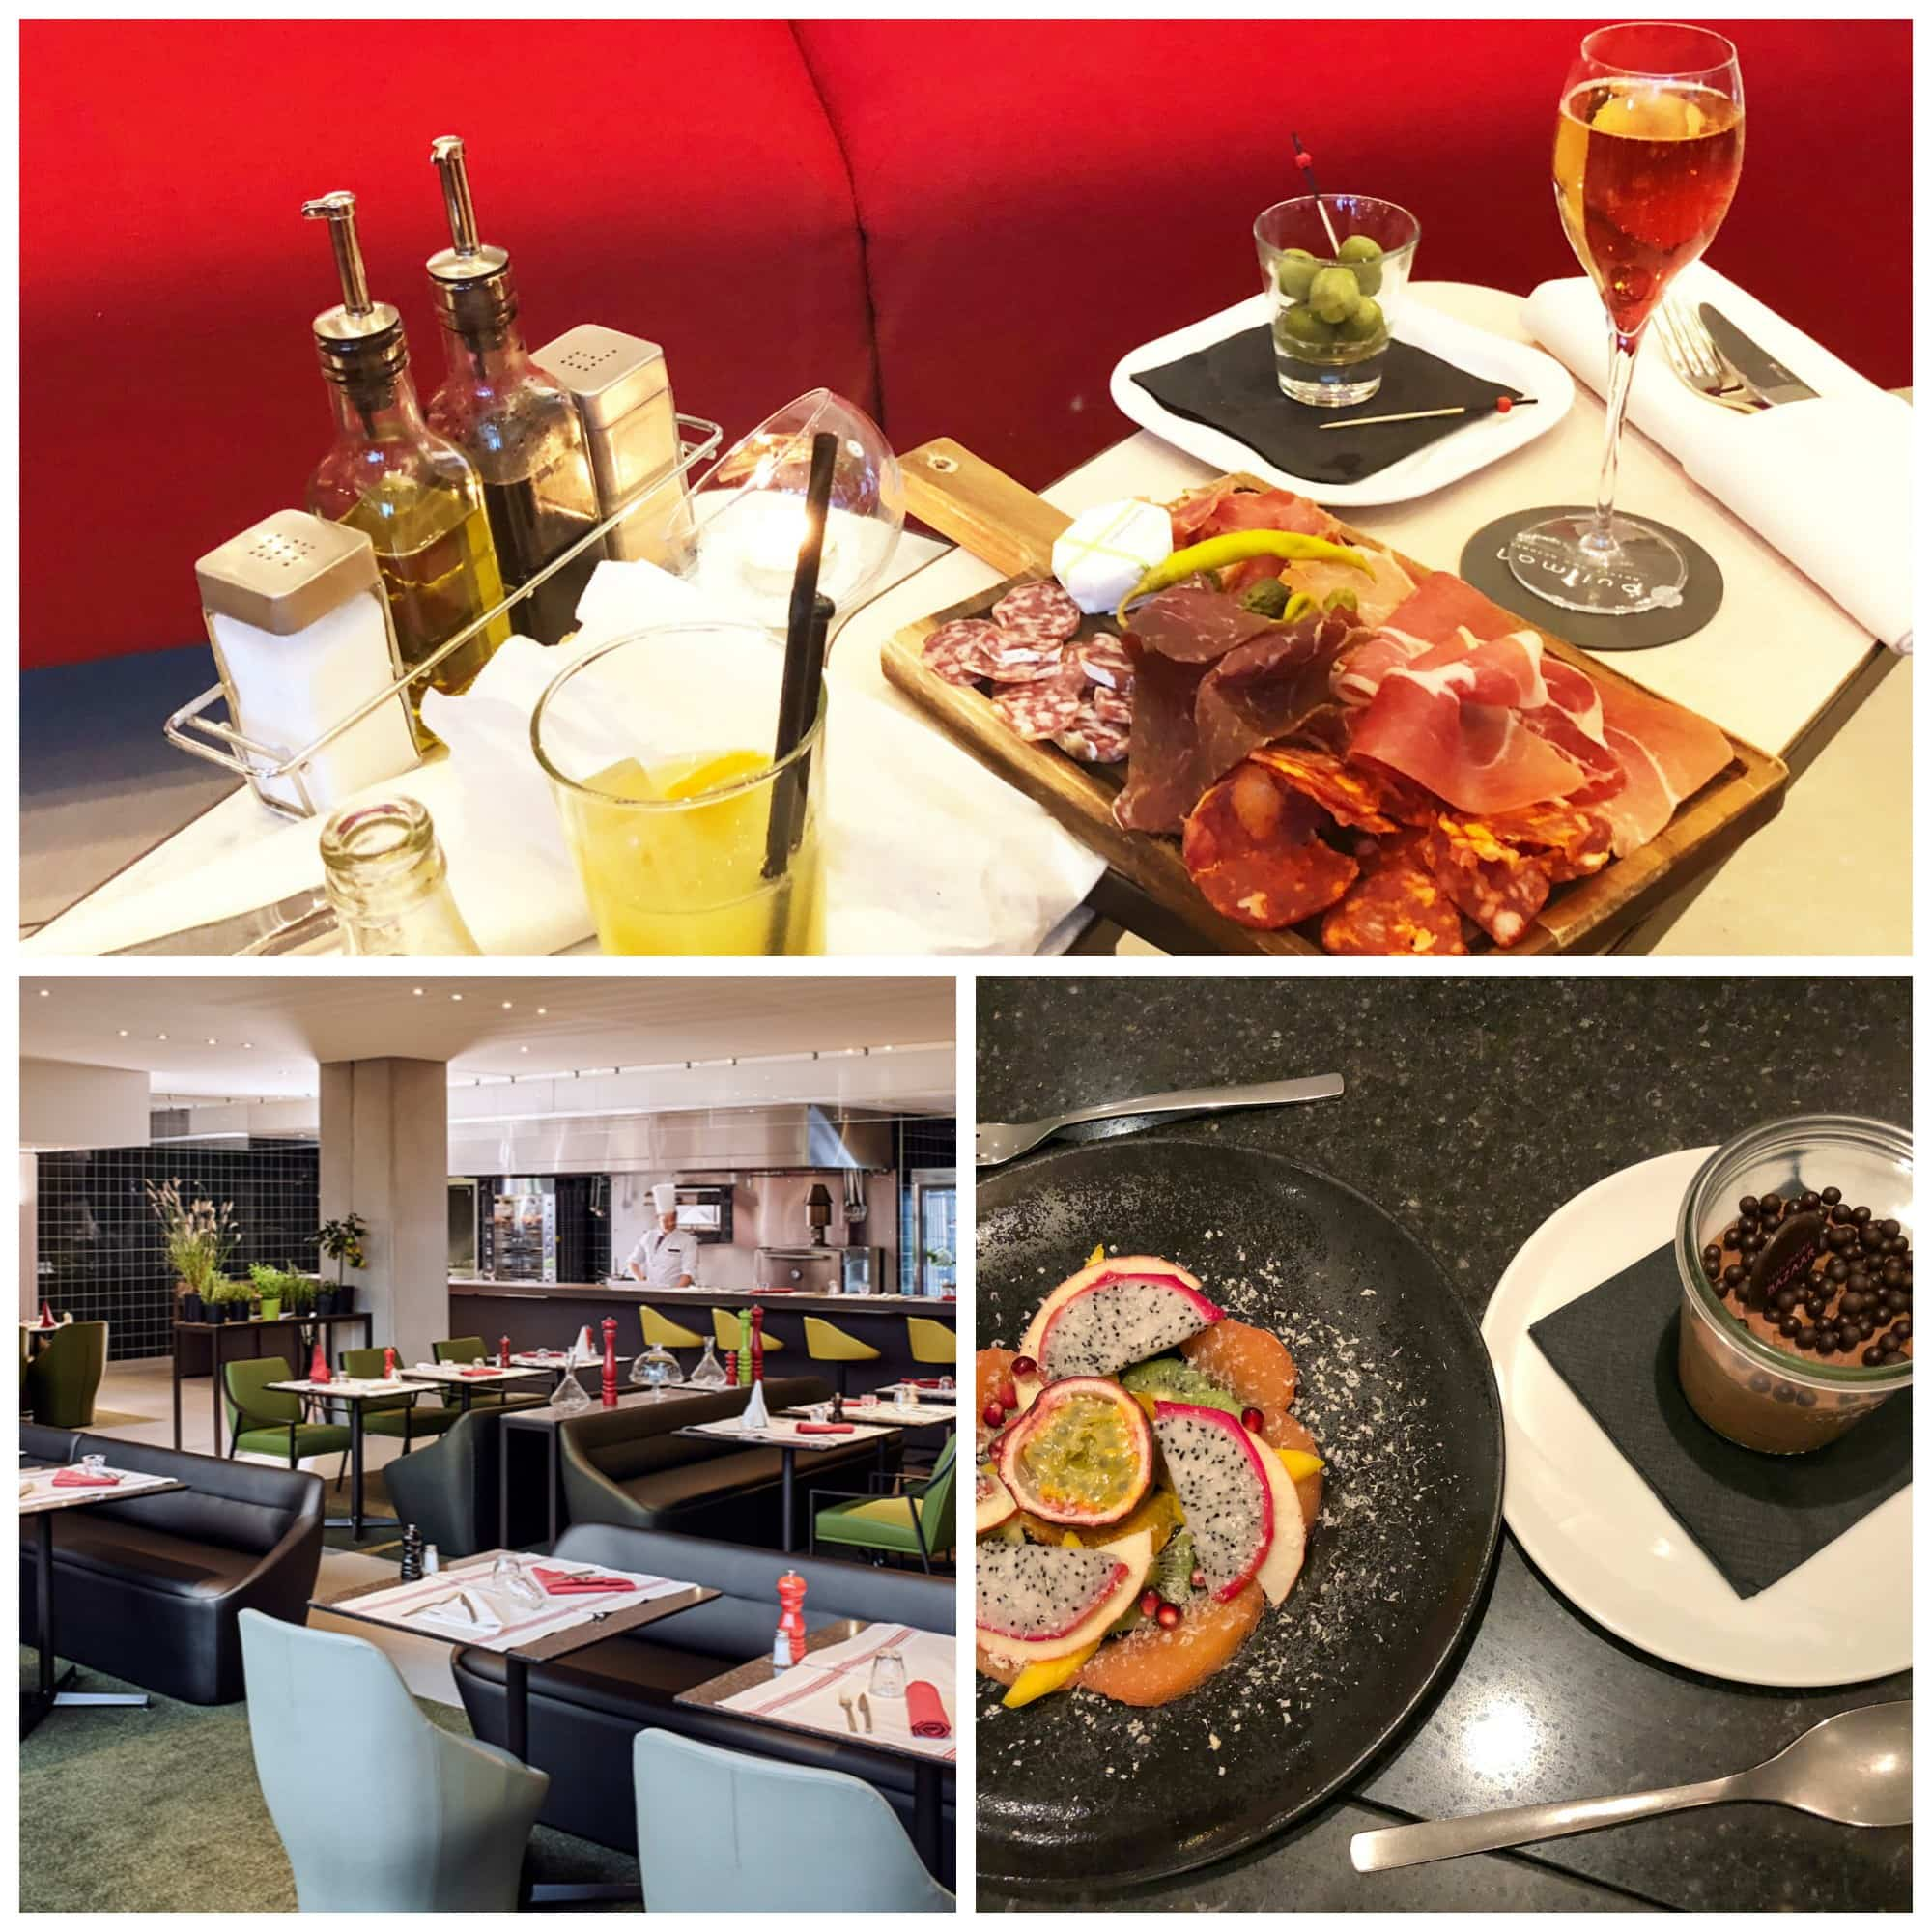 Charcuterie and drinks with kids in the lobby bar; Culinaire Bazaar; Children's desserts at the restaurant at Pullman Charles de Gaulle with kids